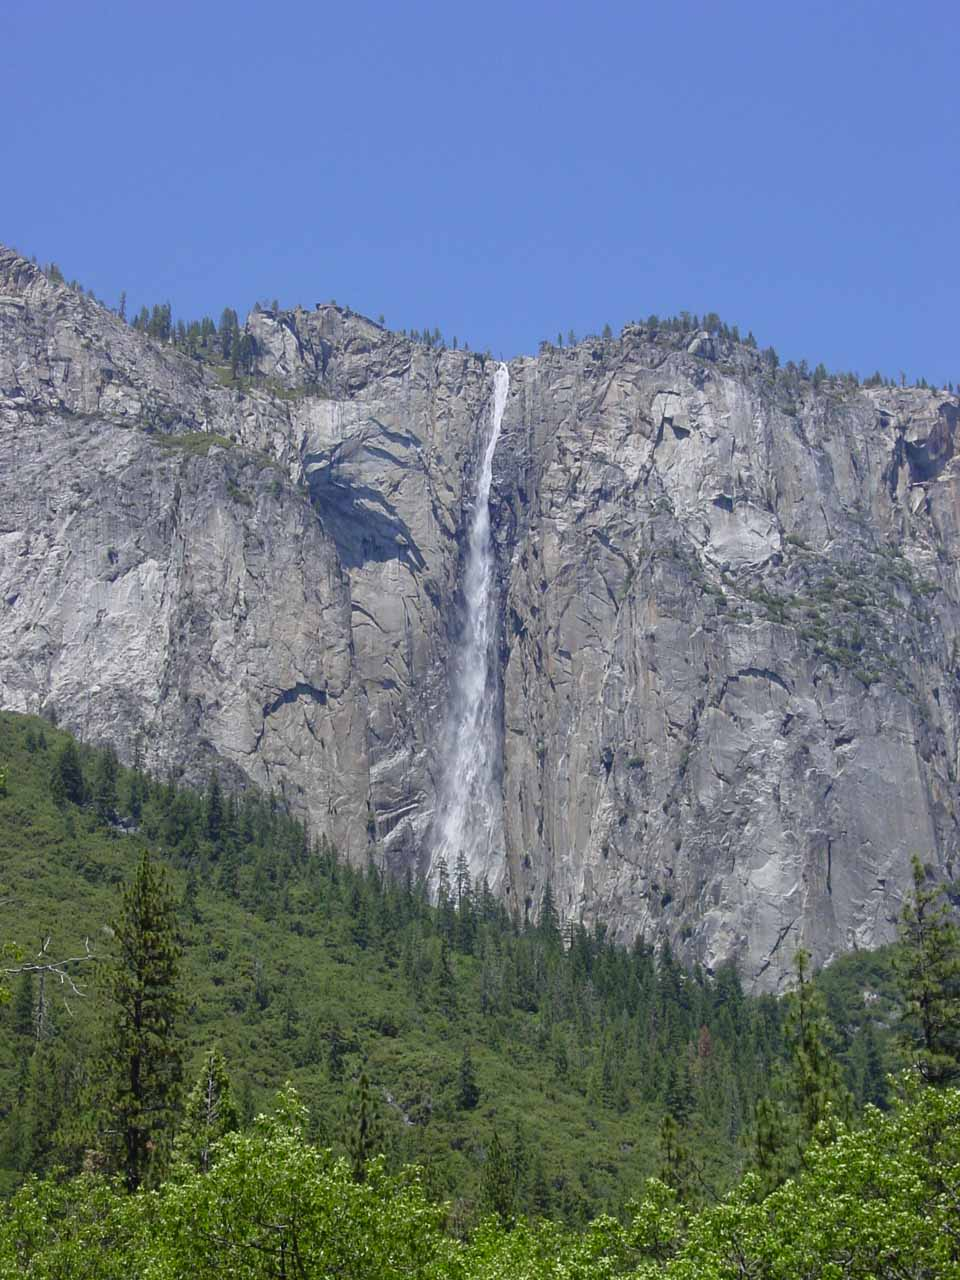 More contextual view of Ribbon Falls in late May 2002